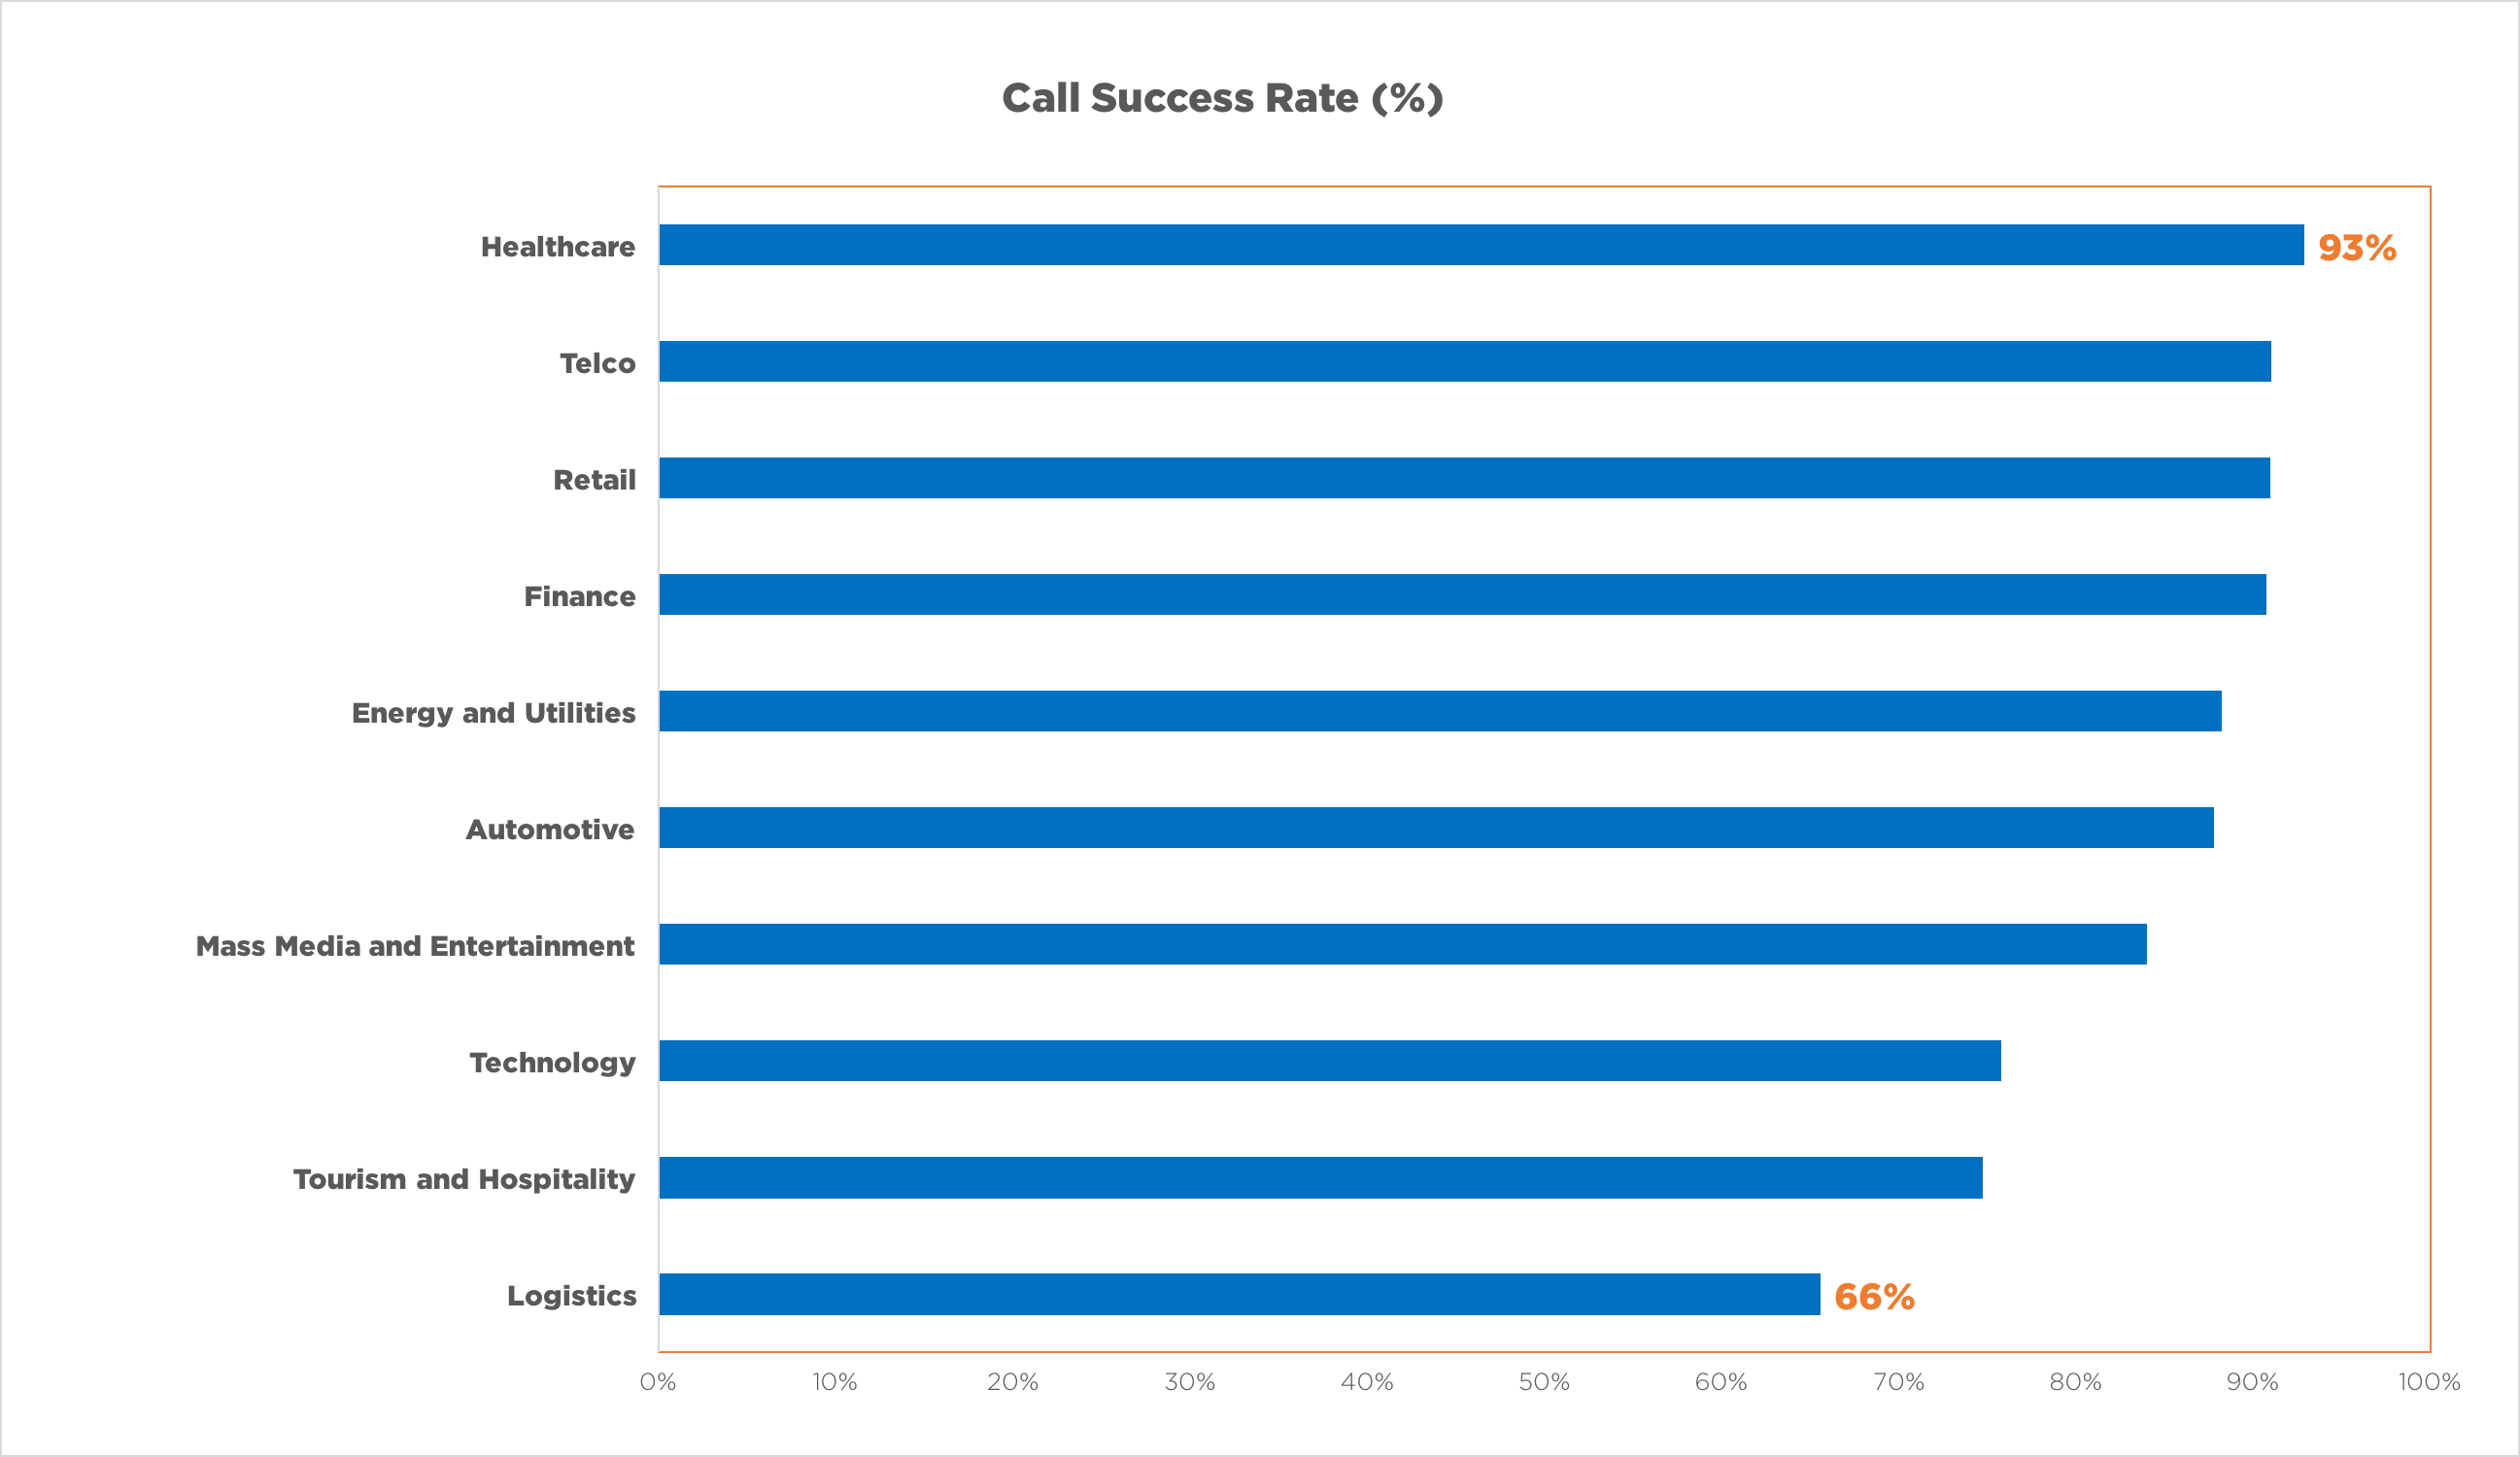 Call Success Rate